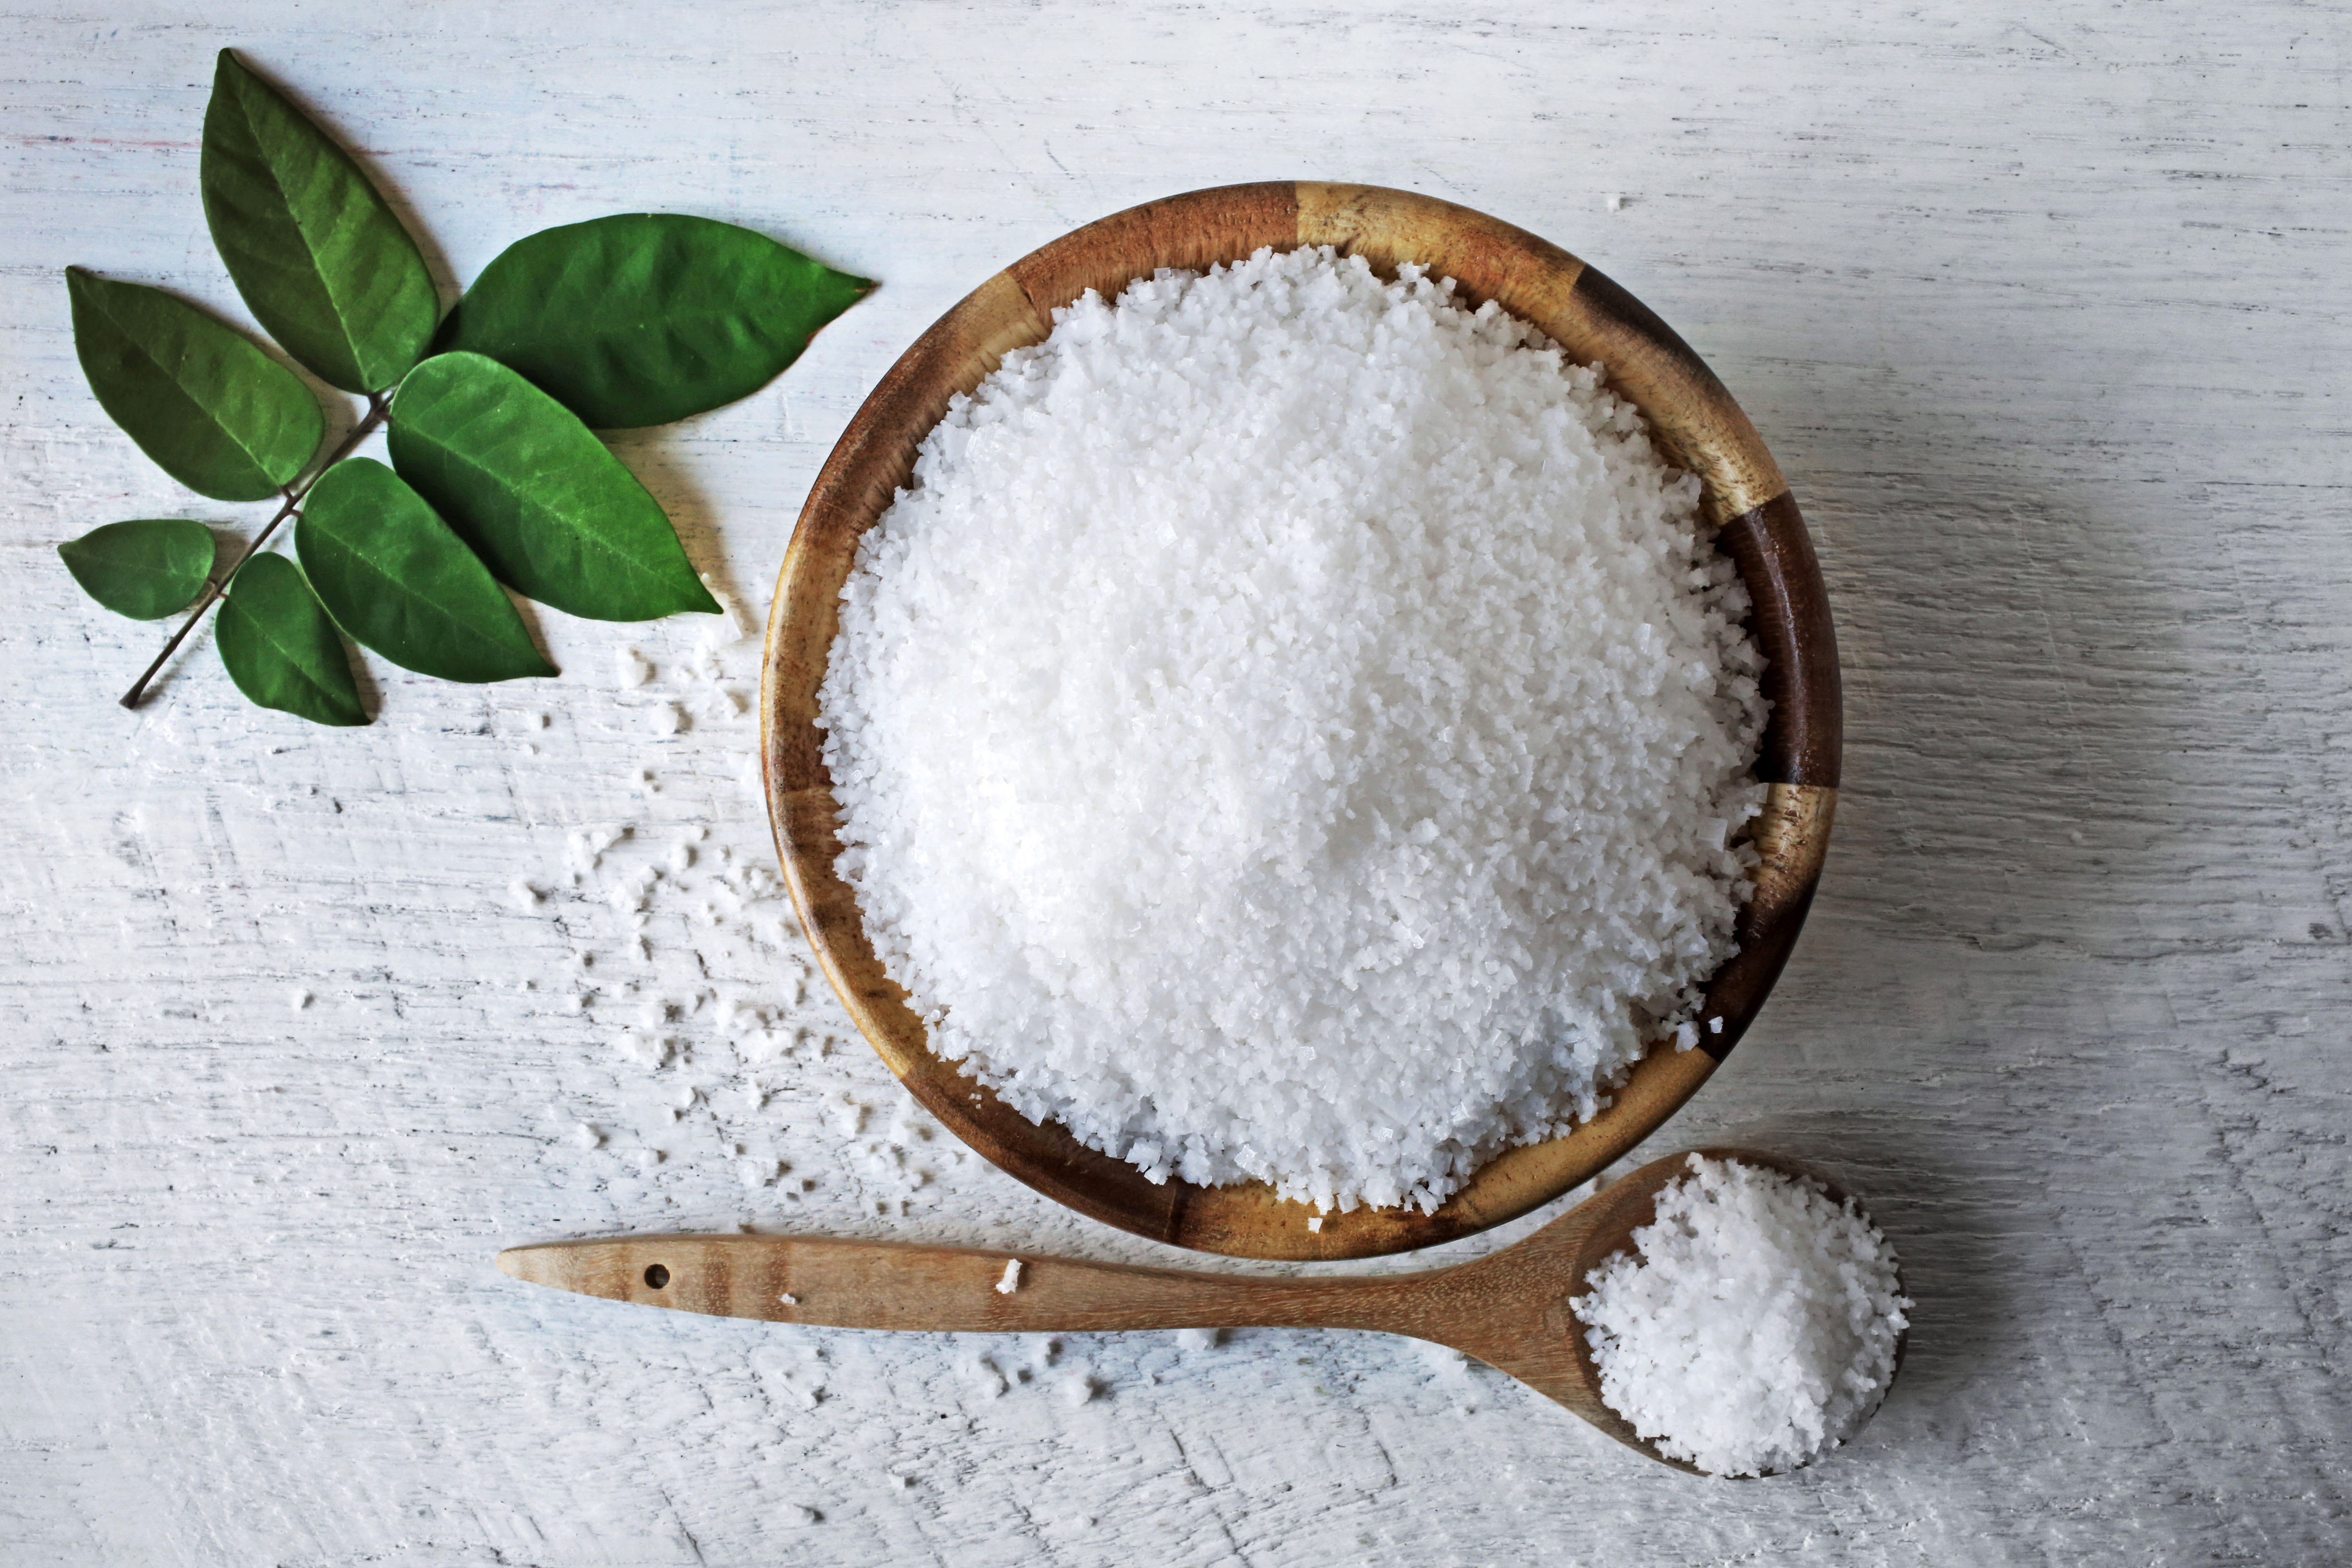 Table salt for preventive health natural remedies with for The saltbox